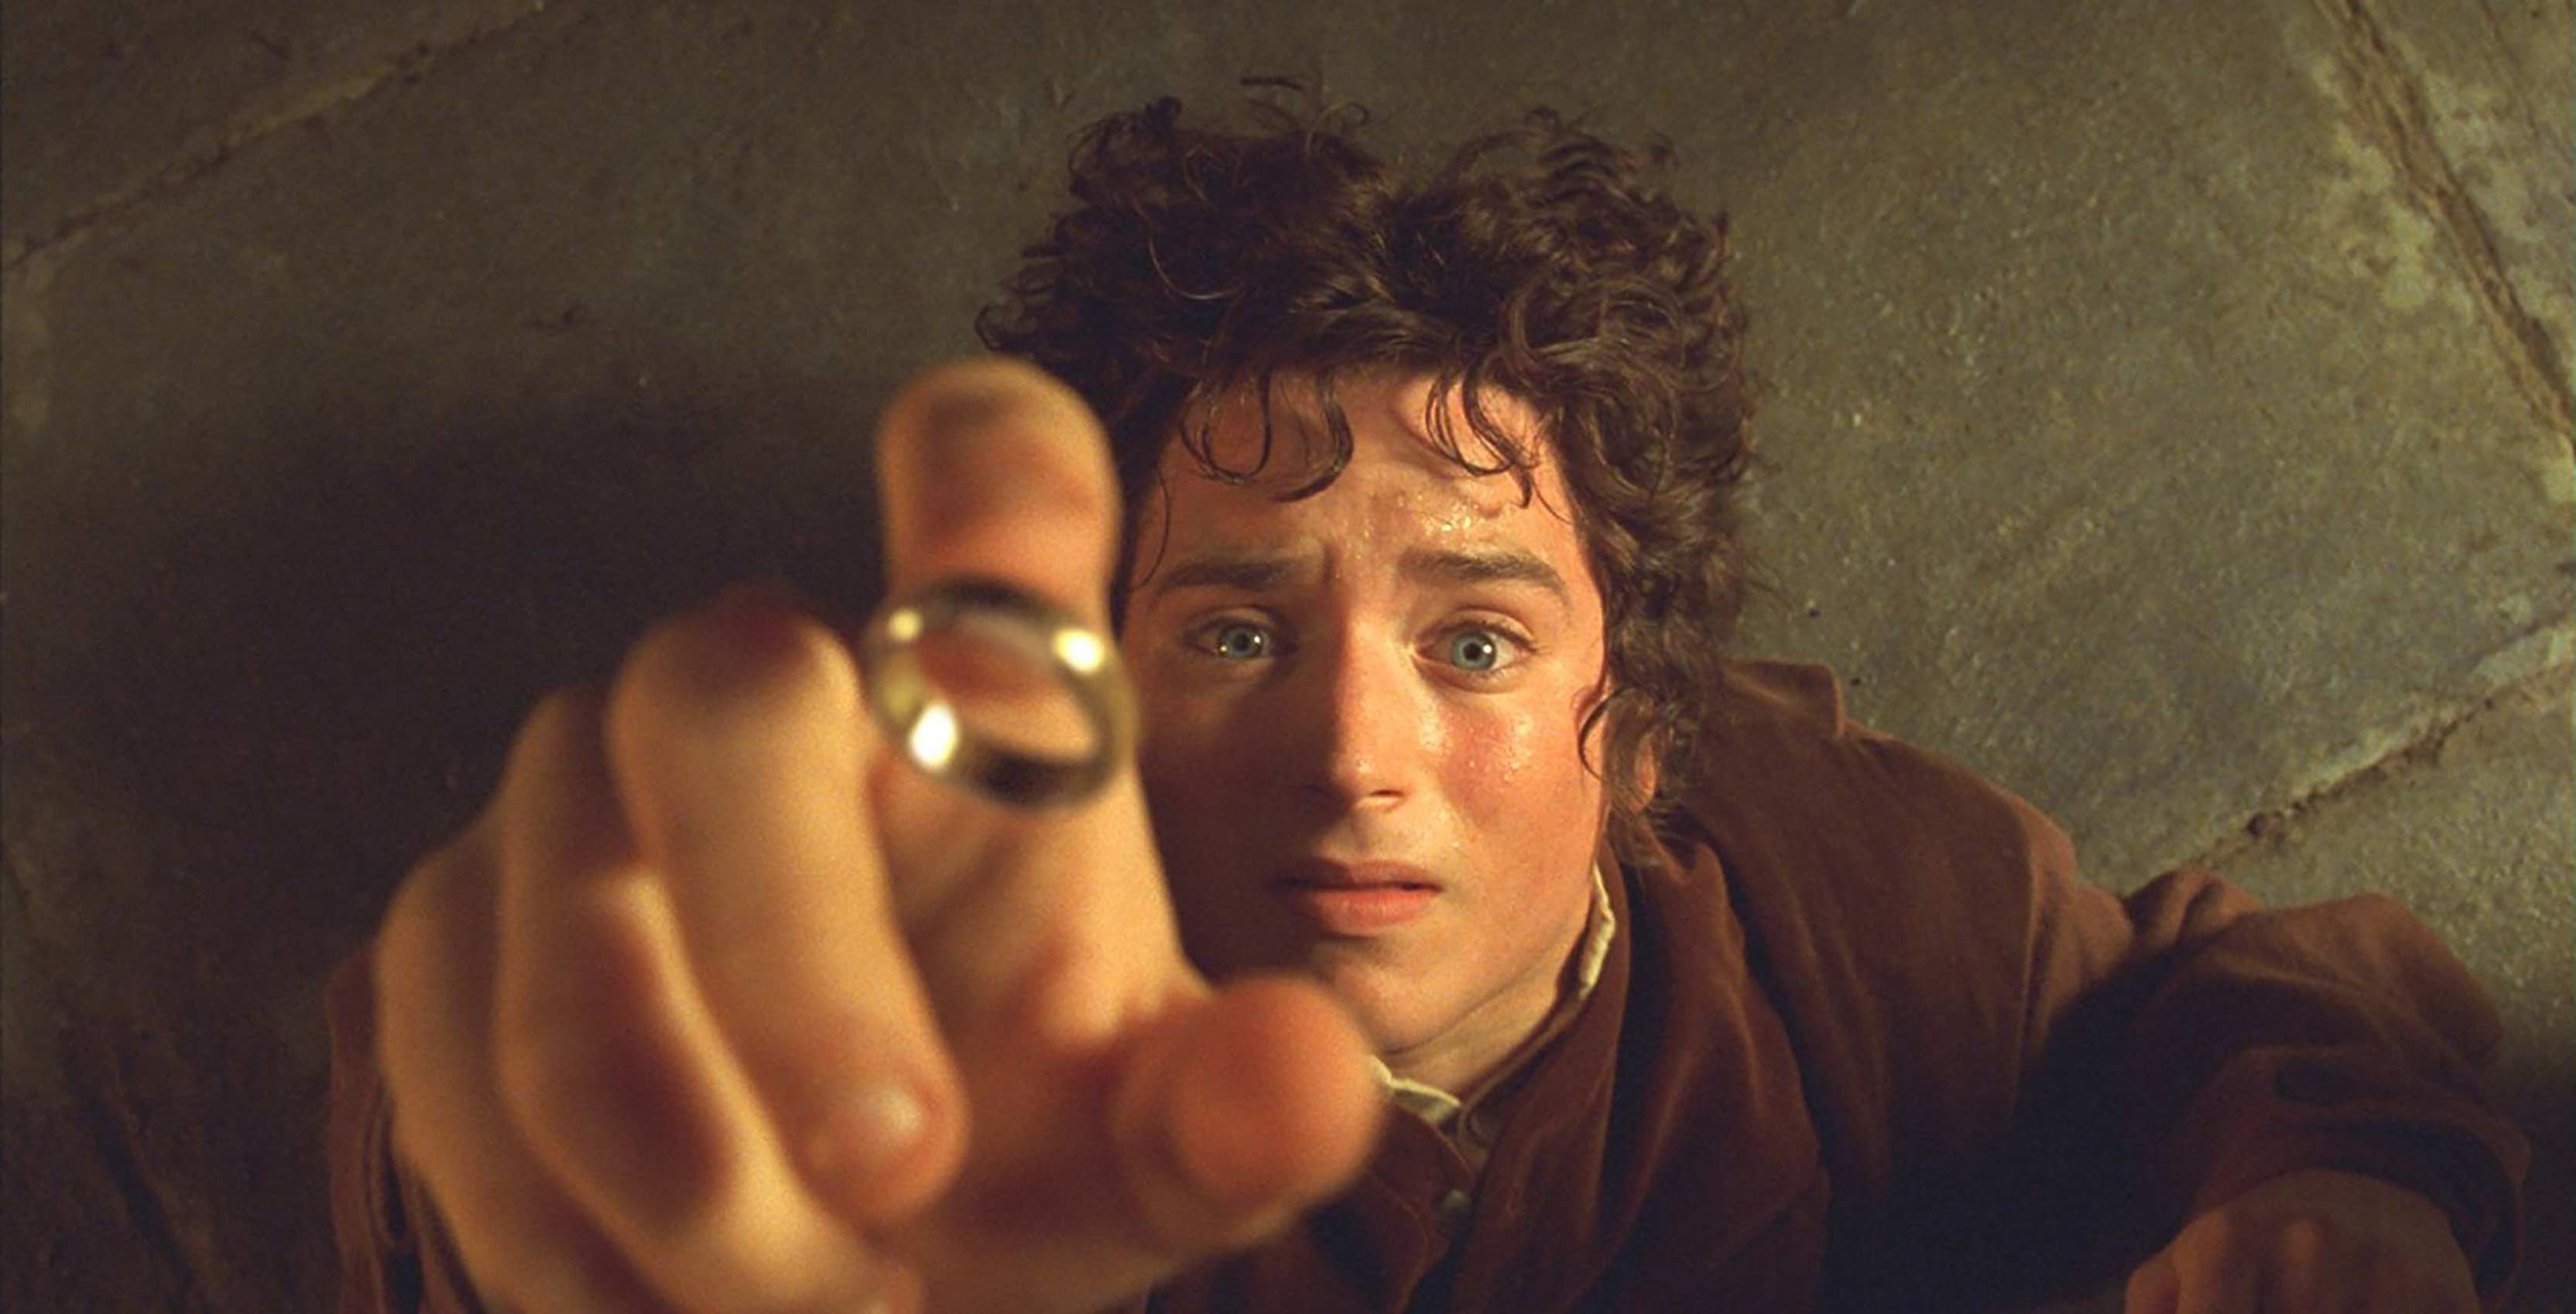 The Lord of the Rings Frodo with ring